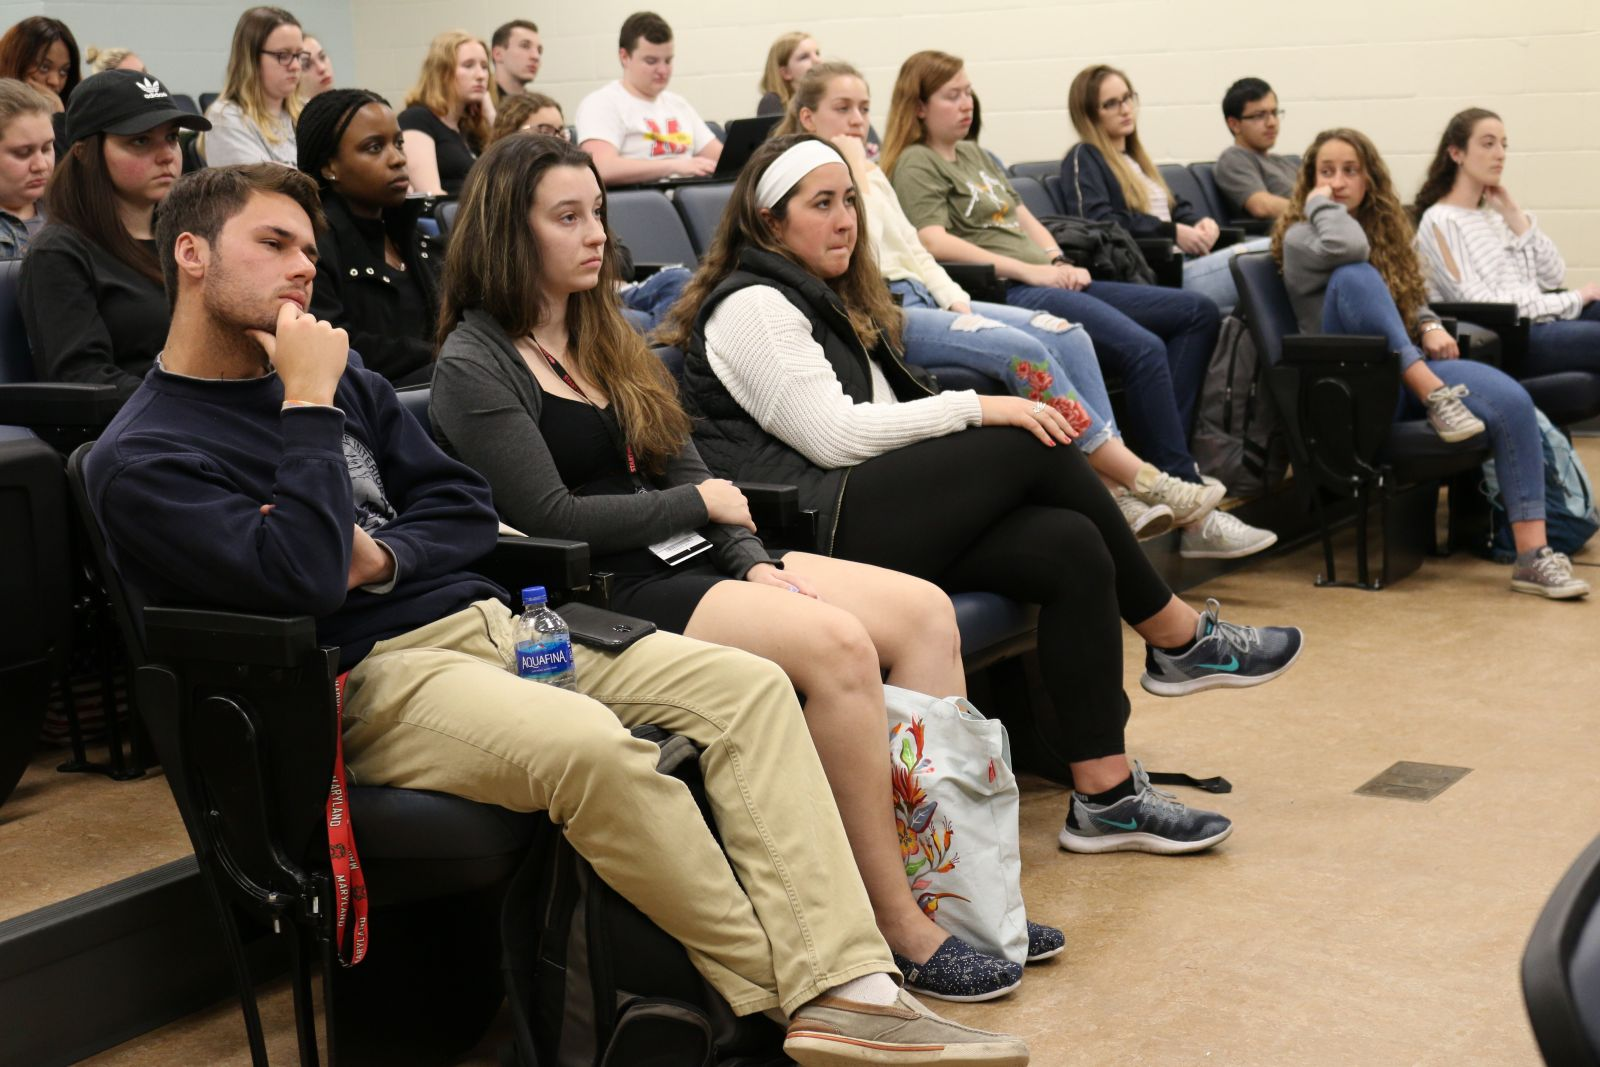 Students attend a lecture at the Universty of Maryland